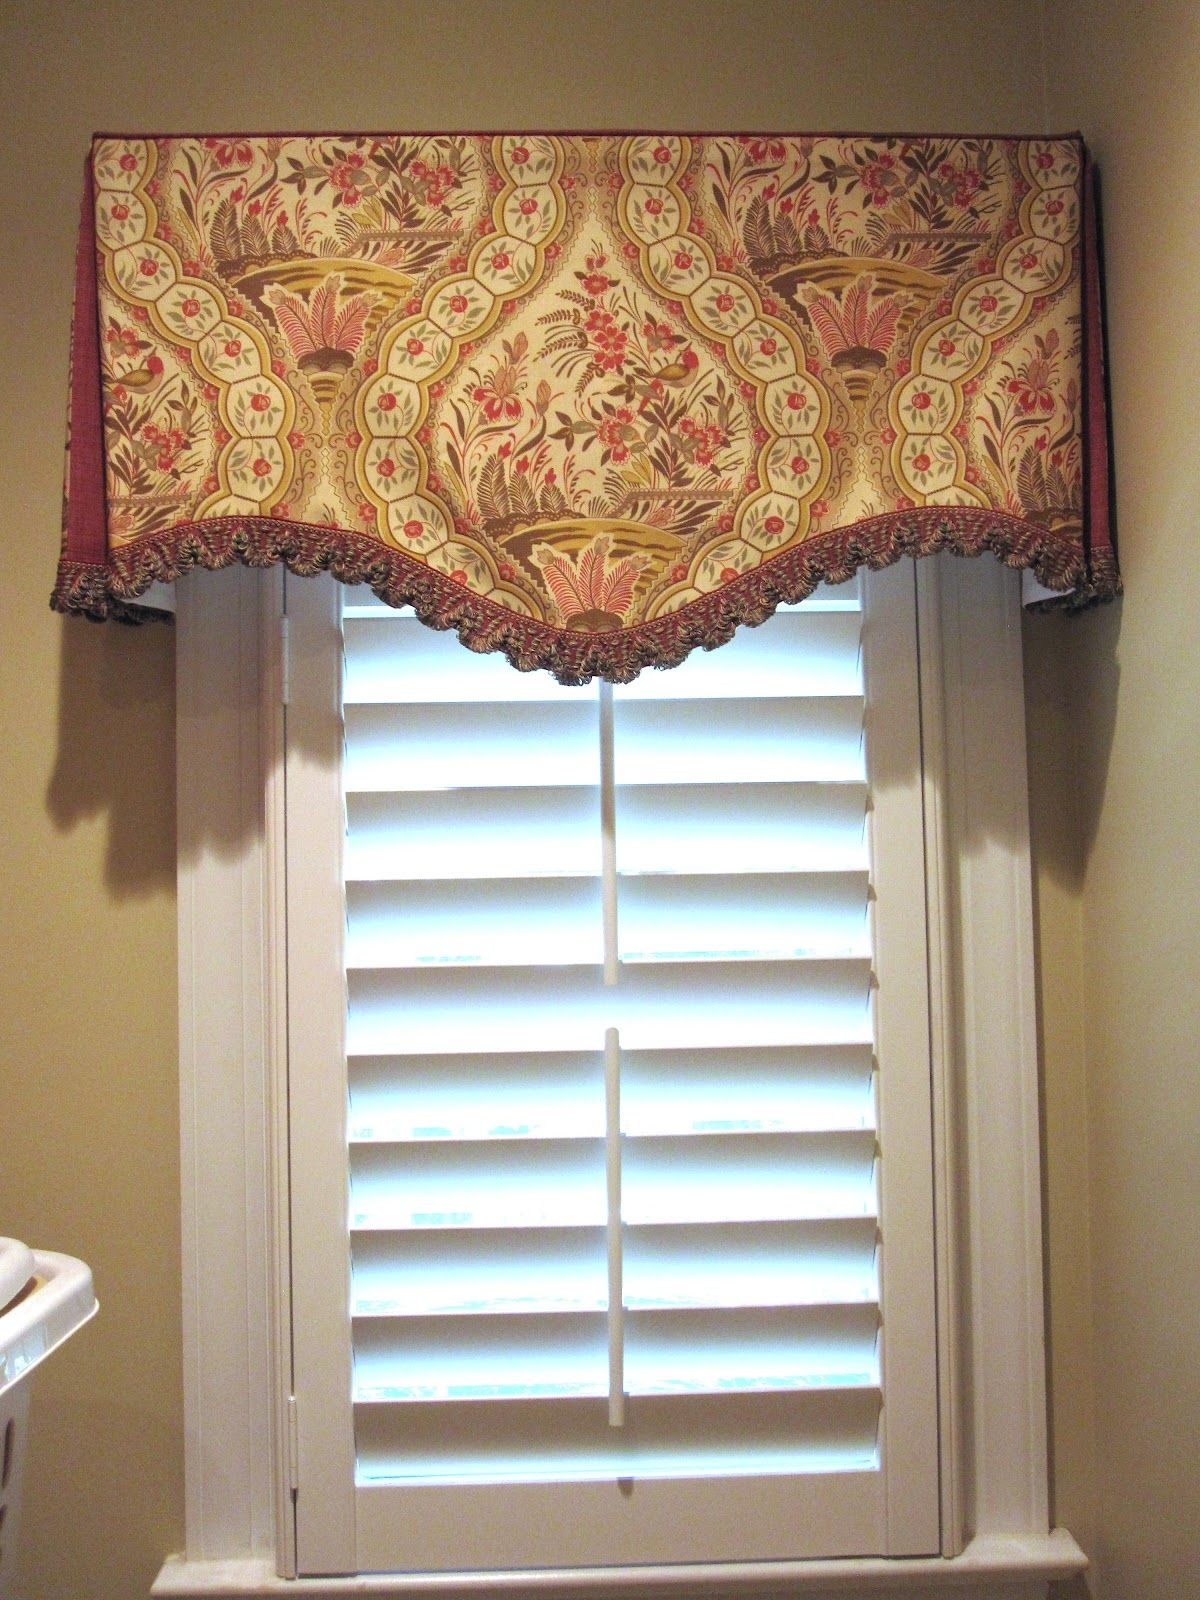 Bathroom Cabinet : Simple Bathroom Valances Window Treatments With ...